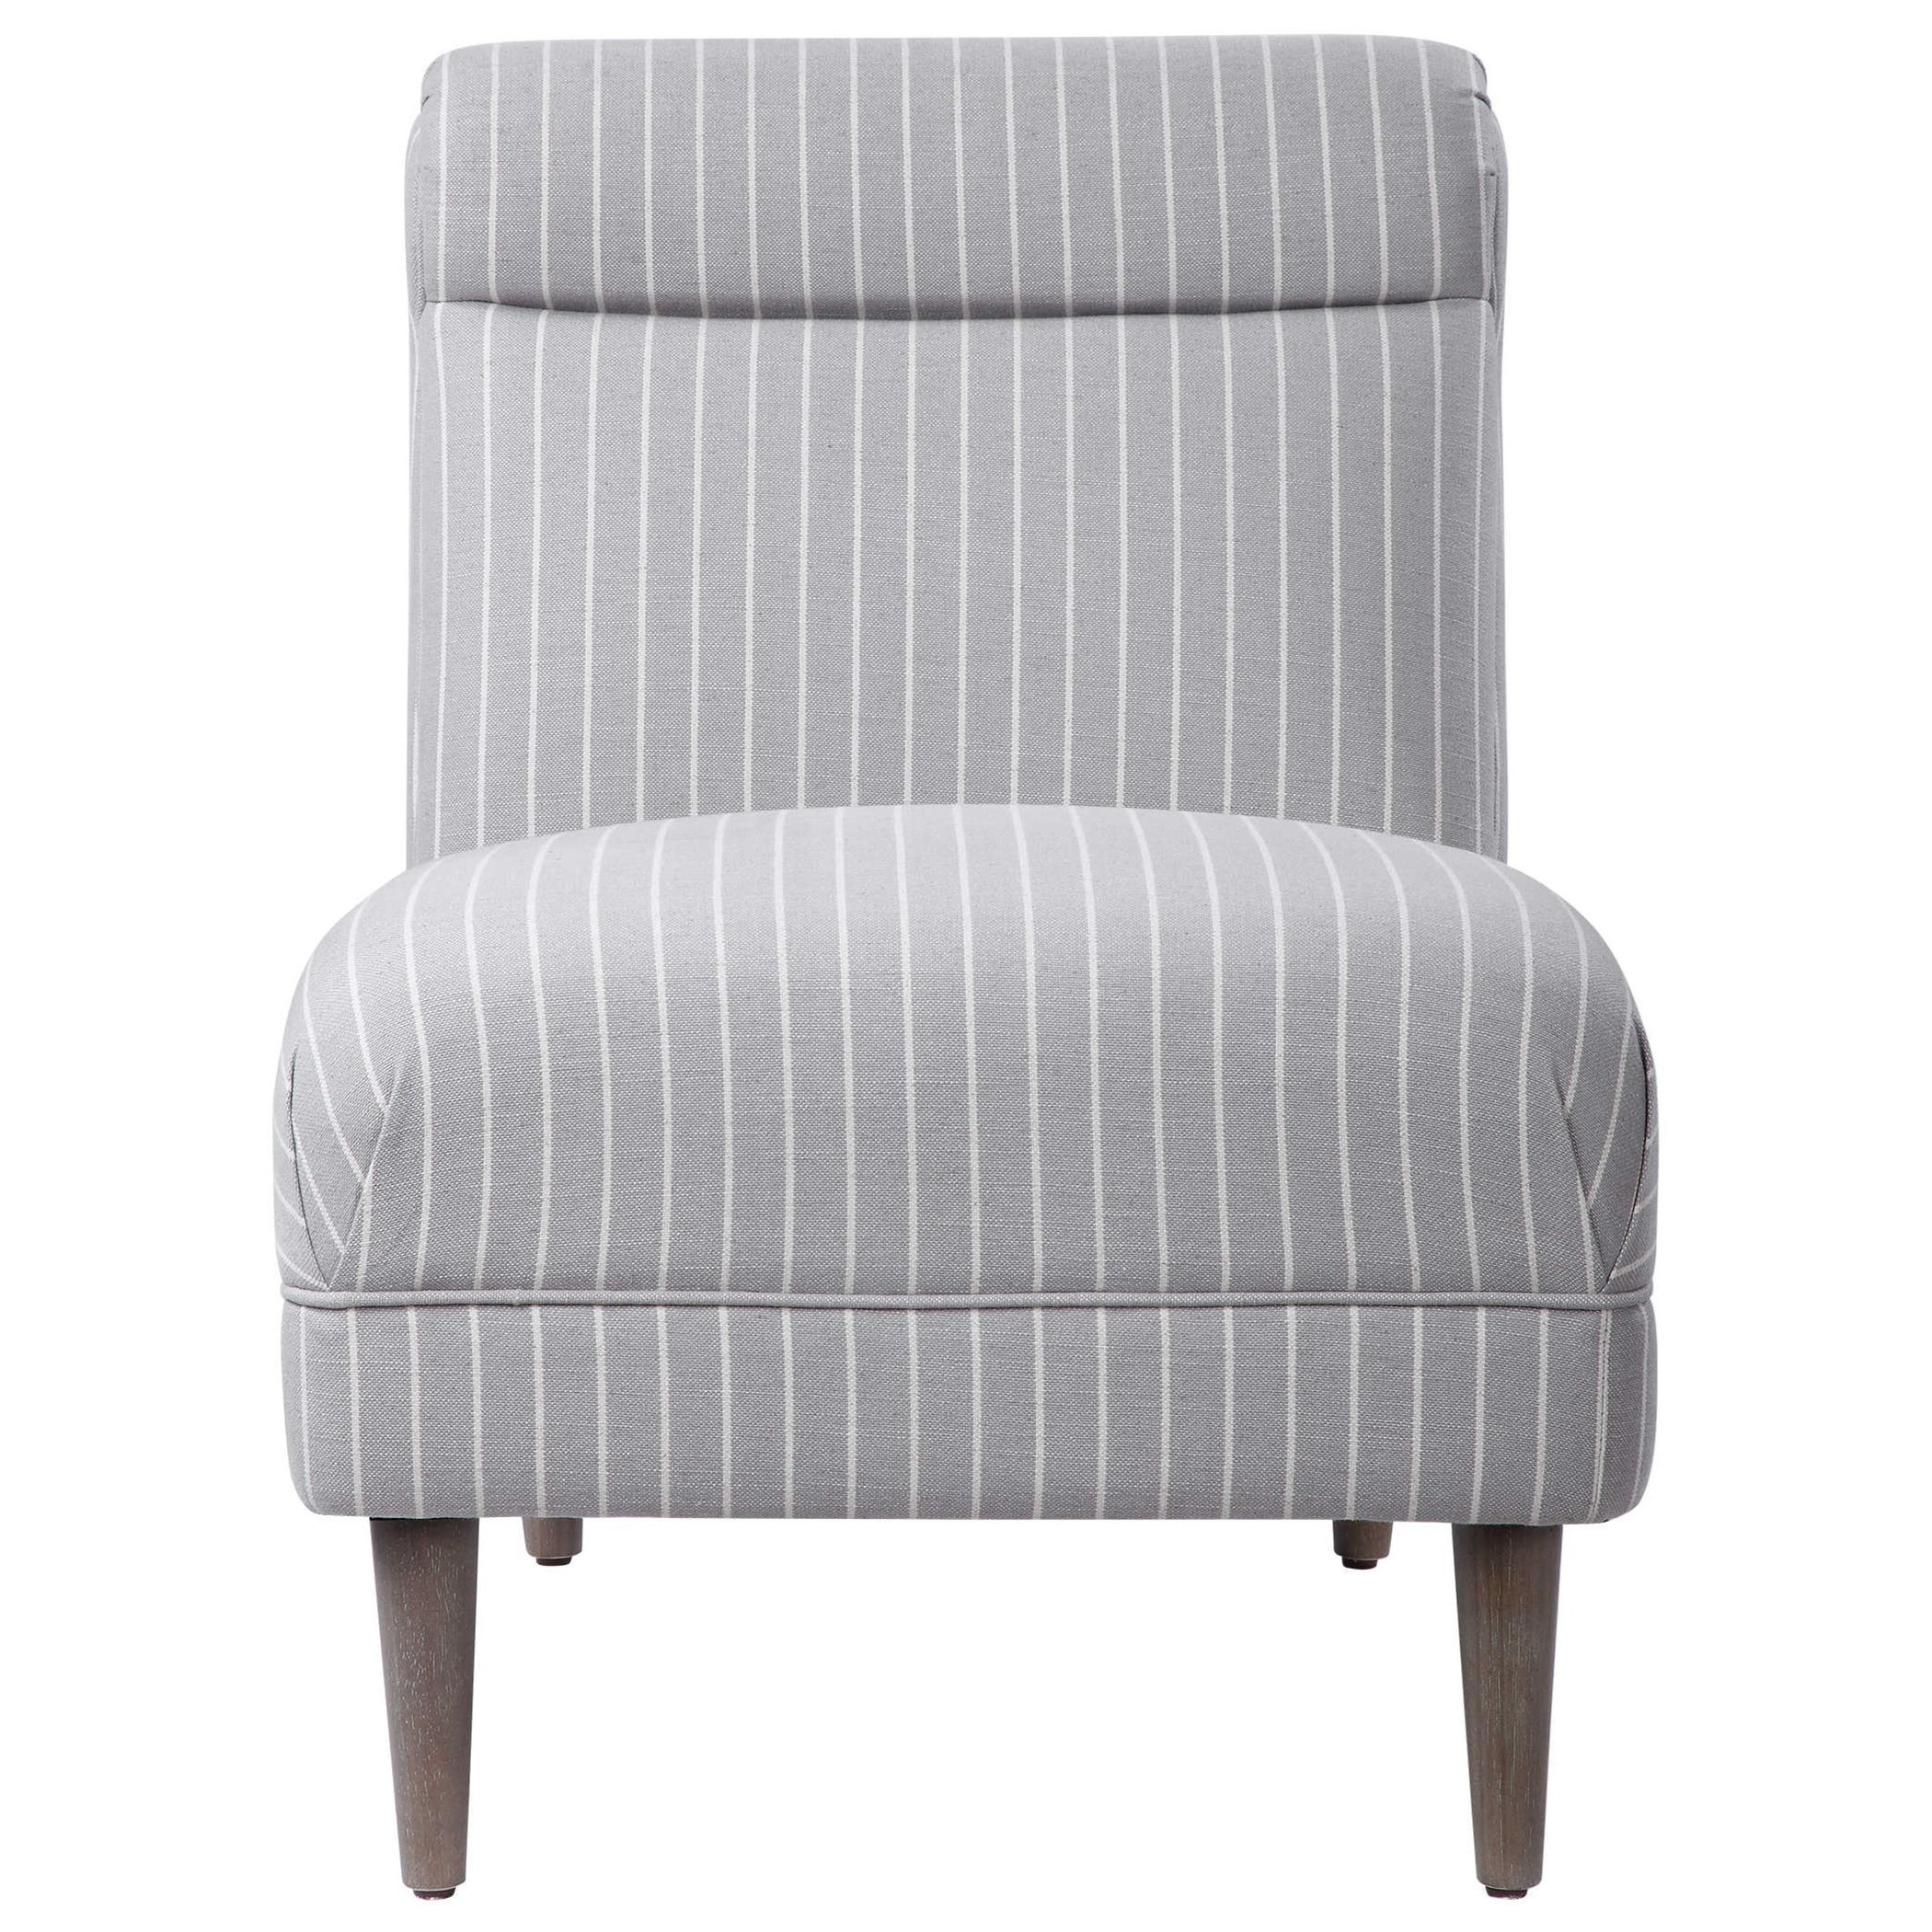 Accent Furniture - Accent Chairs Grenada Light Gray Accent Chair by Uttermost at Del Sol Furniture